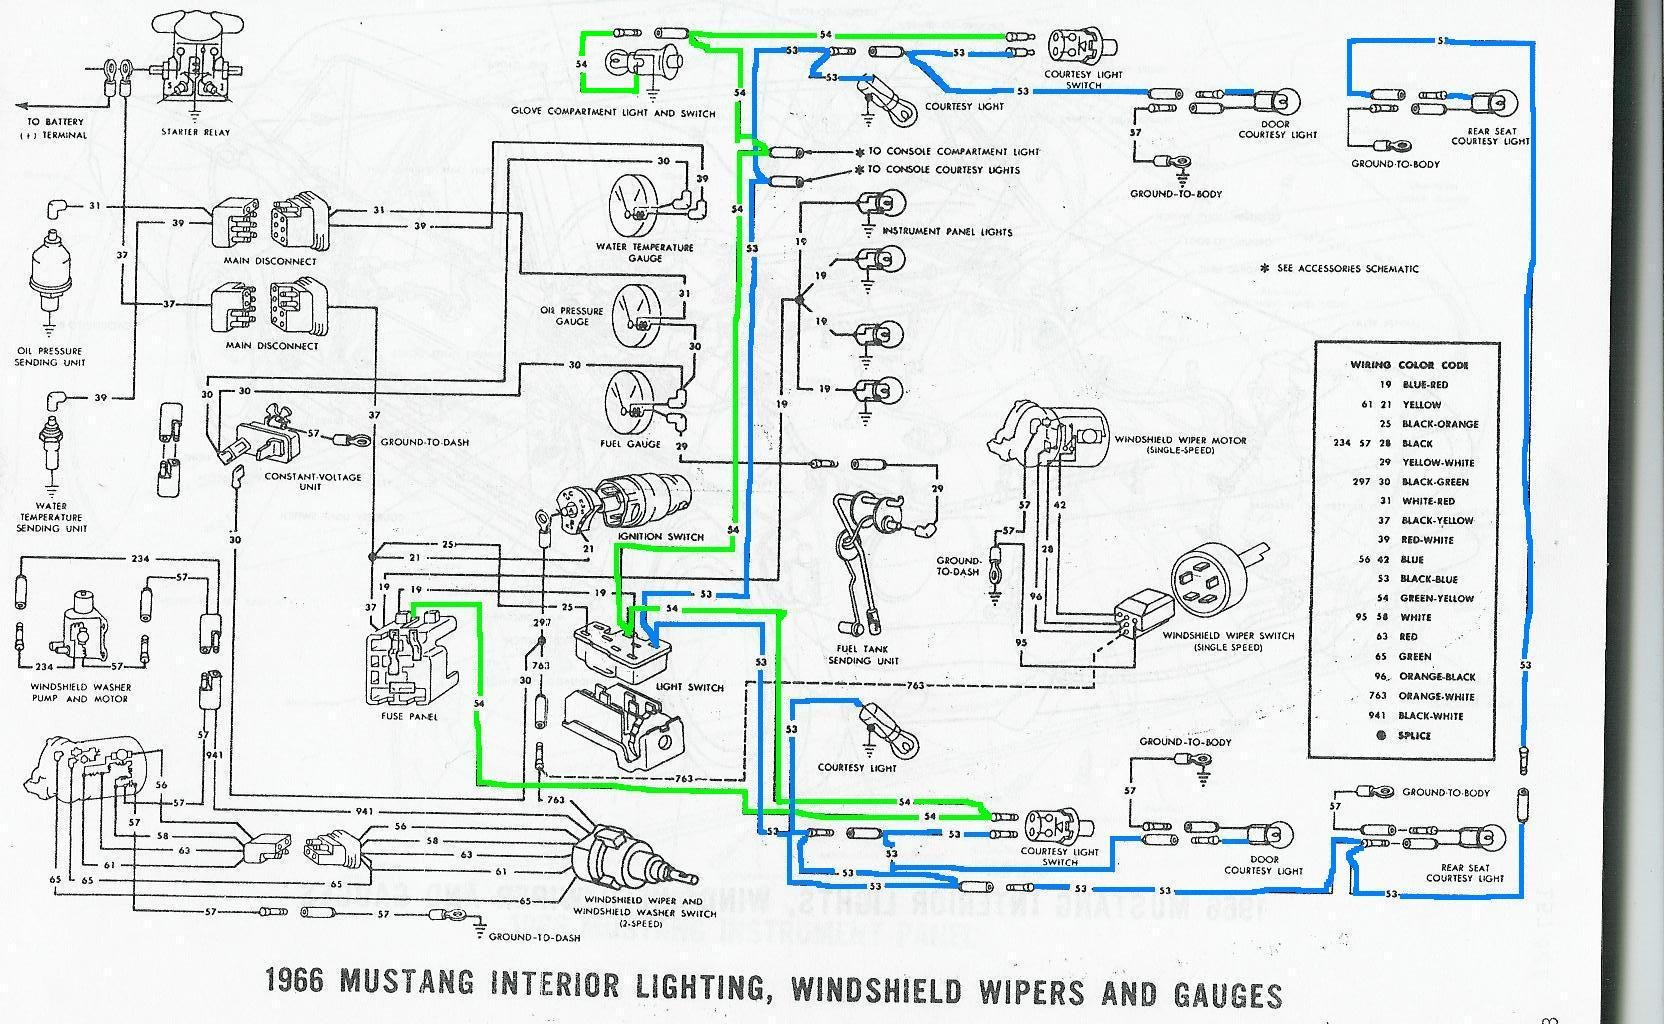 DIAGRAM] 1966 Mustang Courtesy Light Wiring Diagram FULL Version HD Quality Wiring  Diagram - LIVRESMS.MISTERORIENTAL.FR  MisterOriental.fr